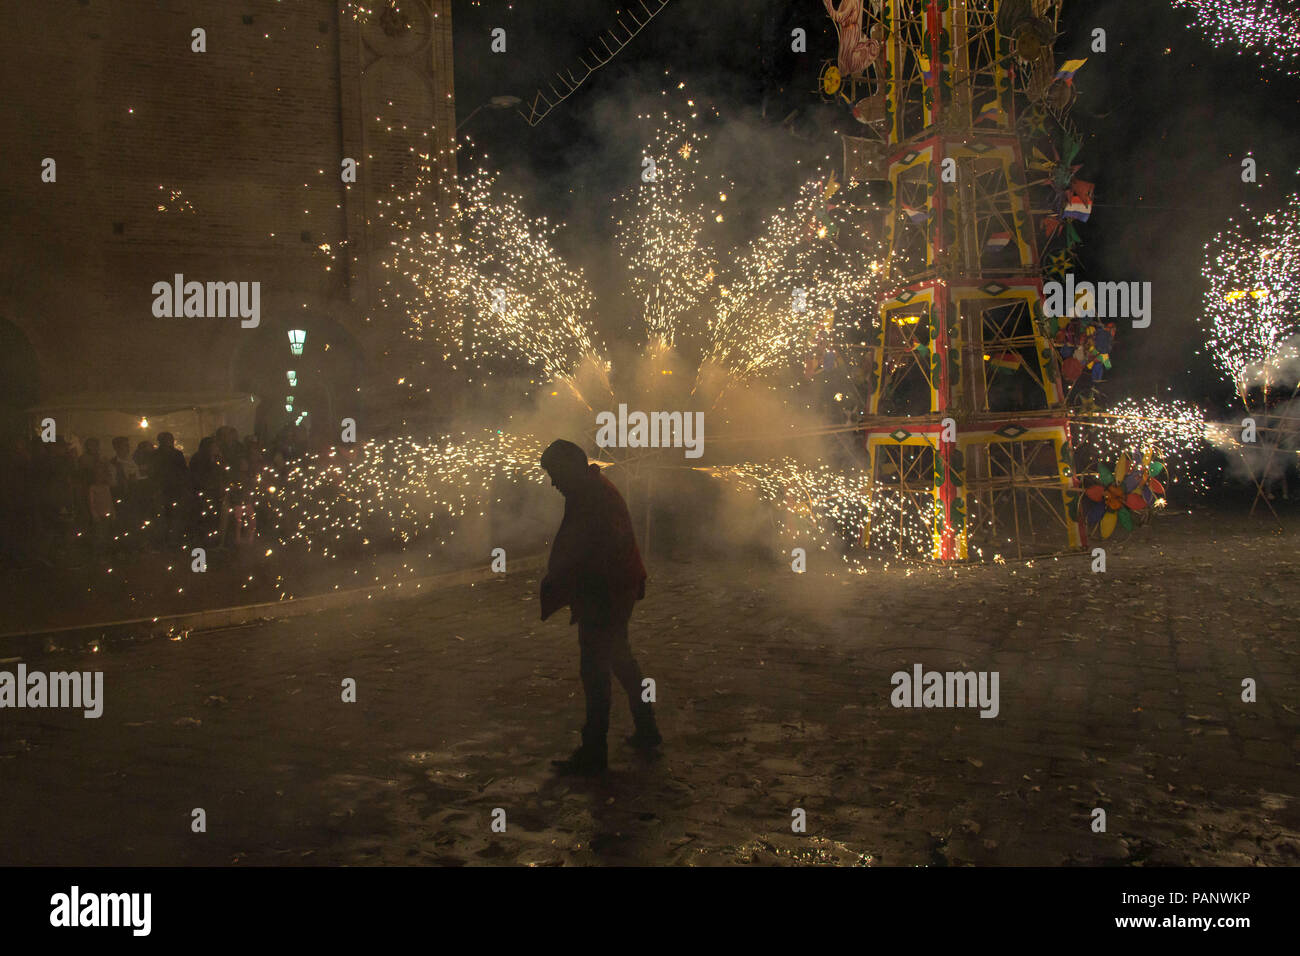 Silhouetted figure in the celebratory fireworks at the Corpus Christi Festival in Cuenca Ecuador - Stock Image